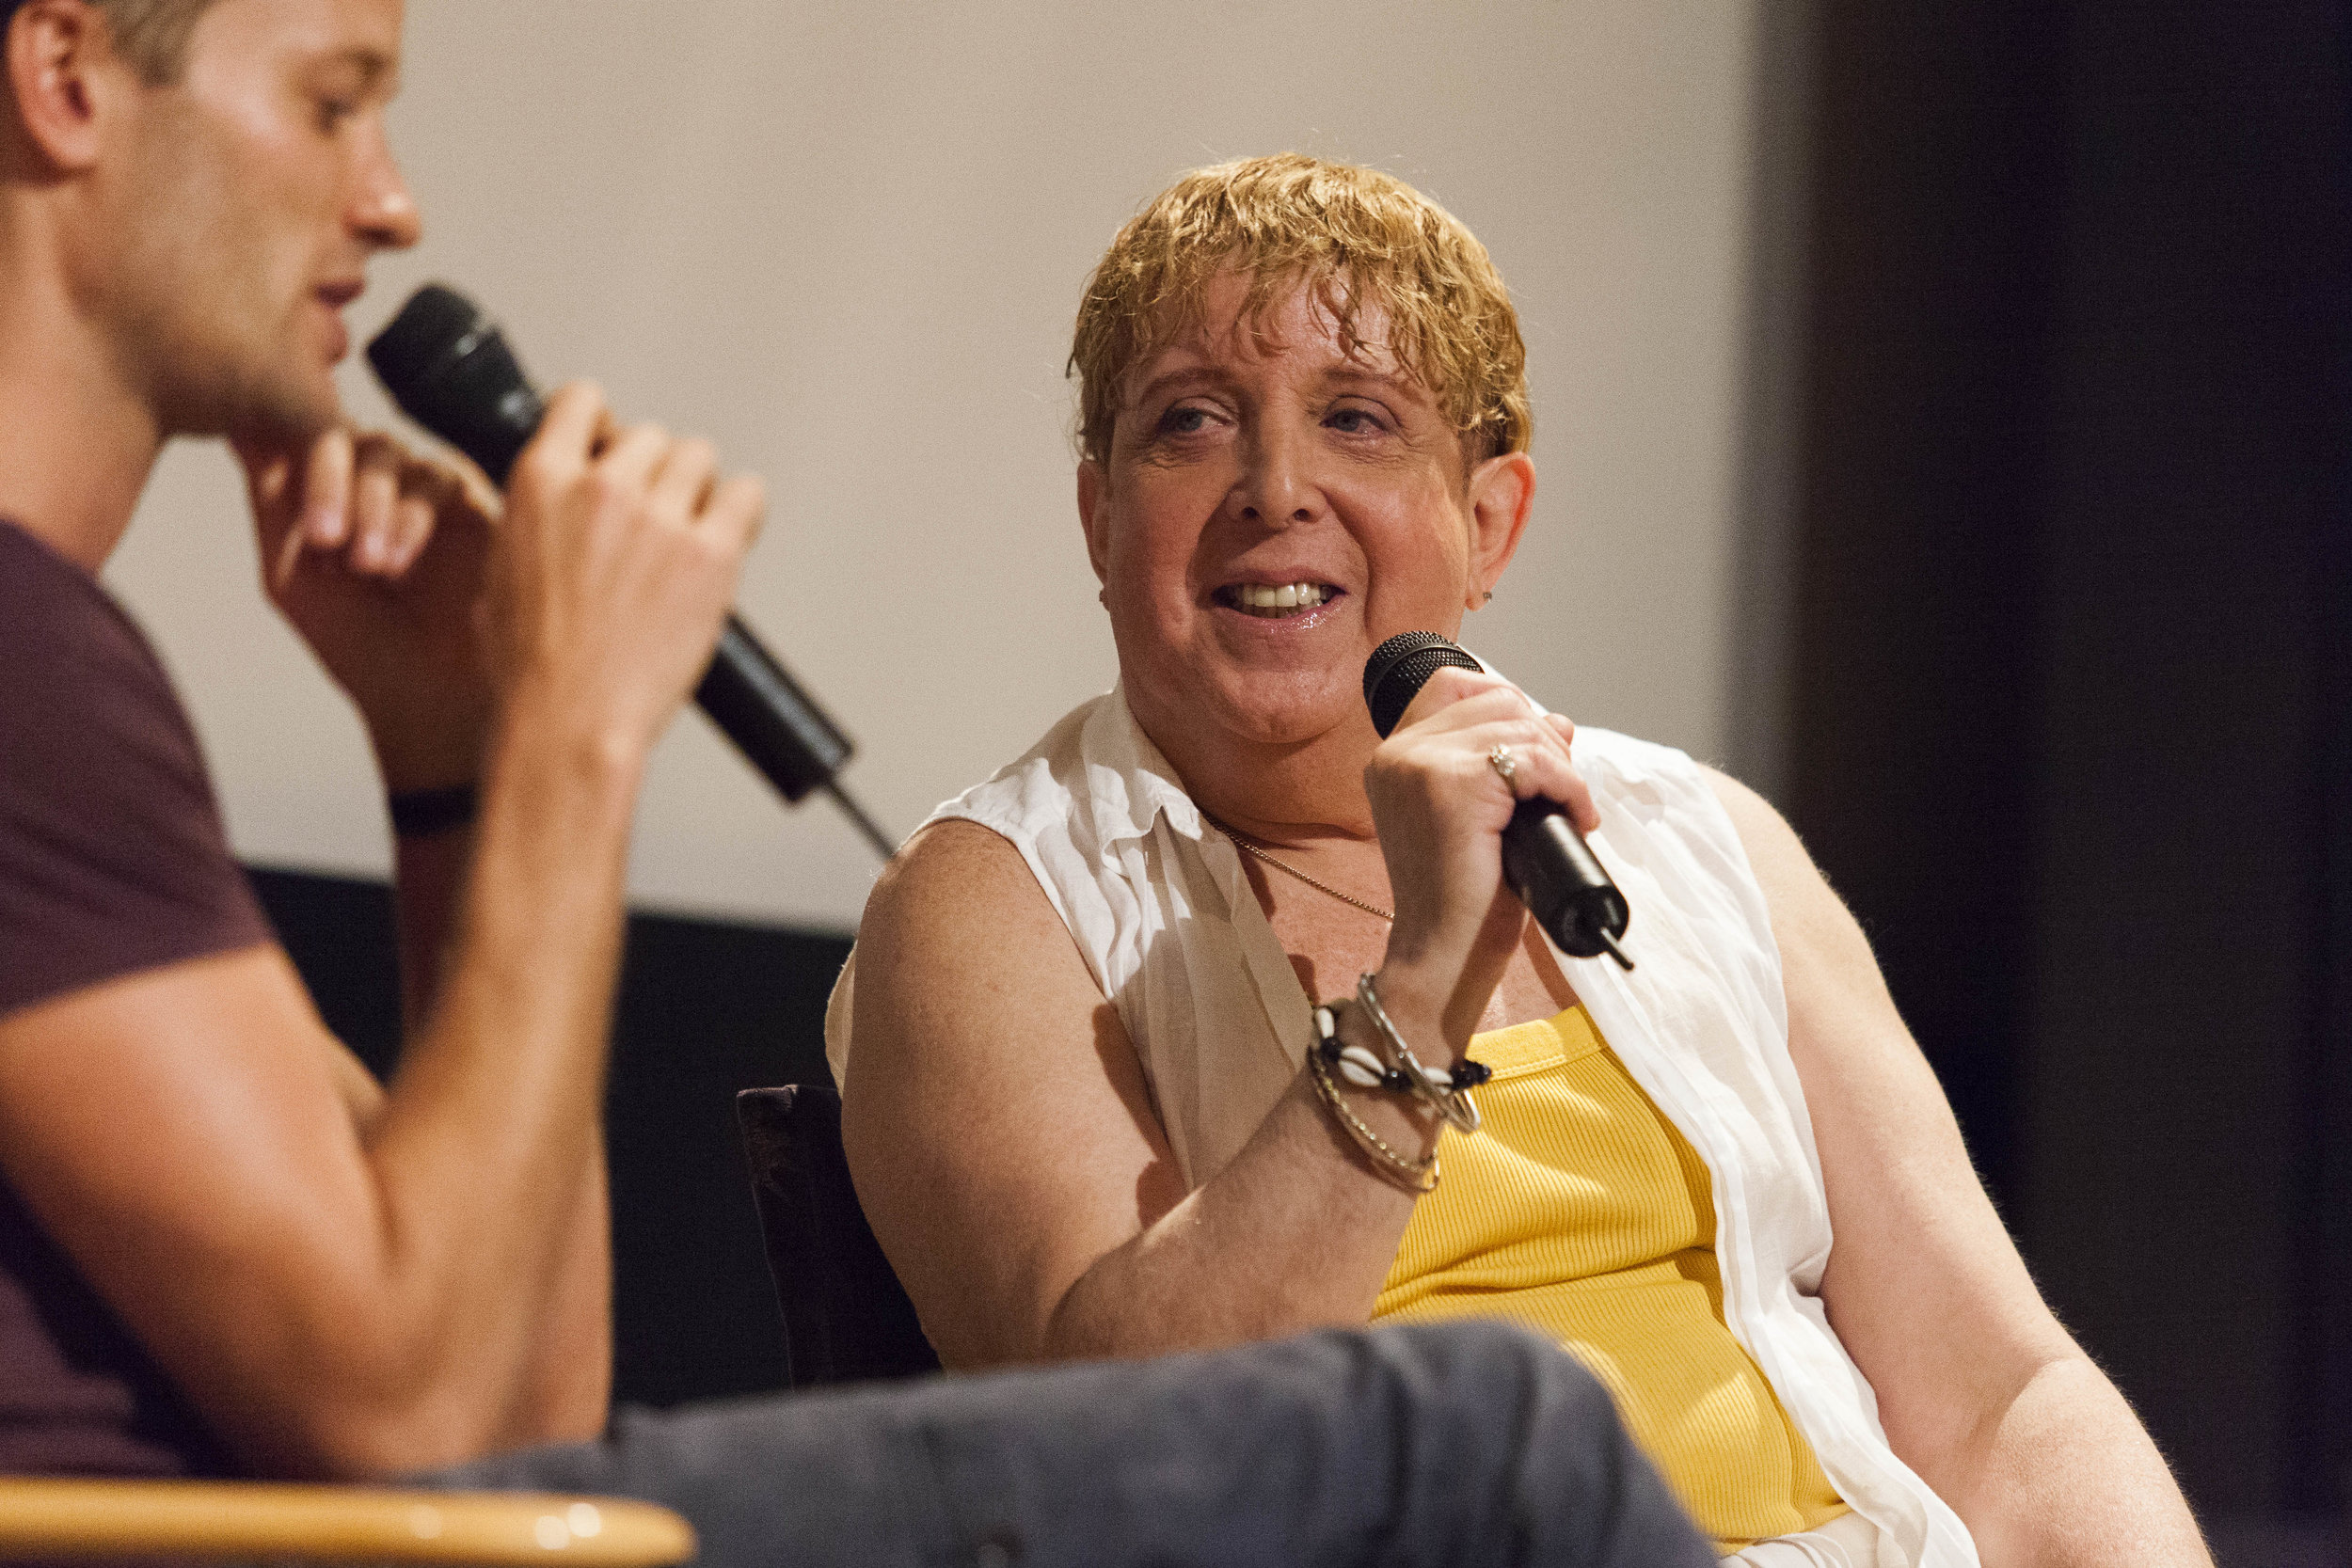 2016_06_27_The_Generations_Project_HBO_Pride_Event_014.JPG